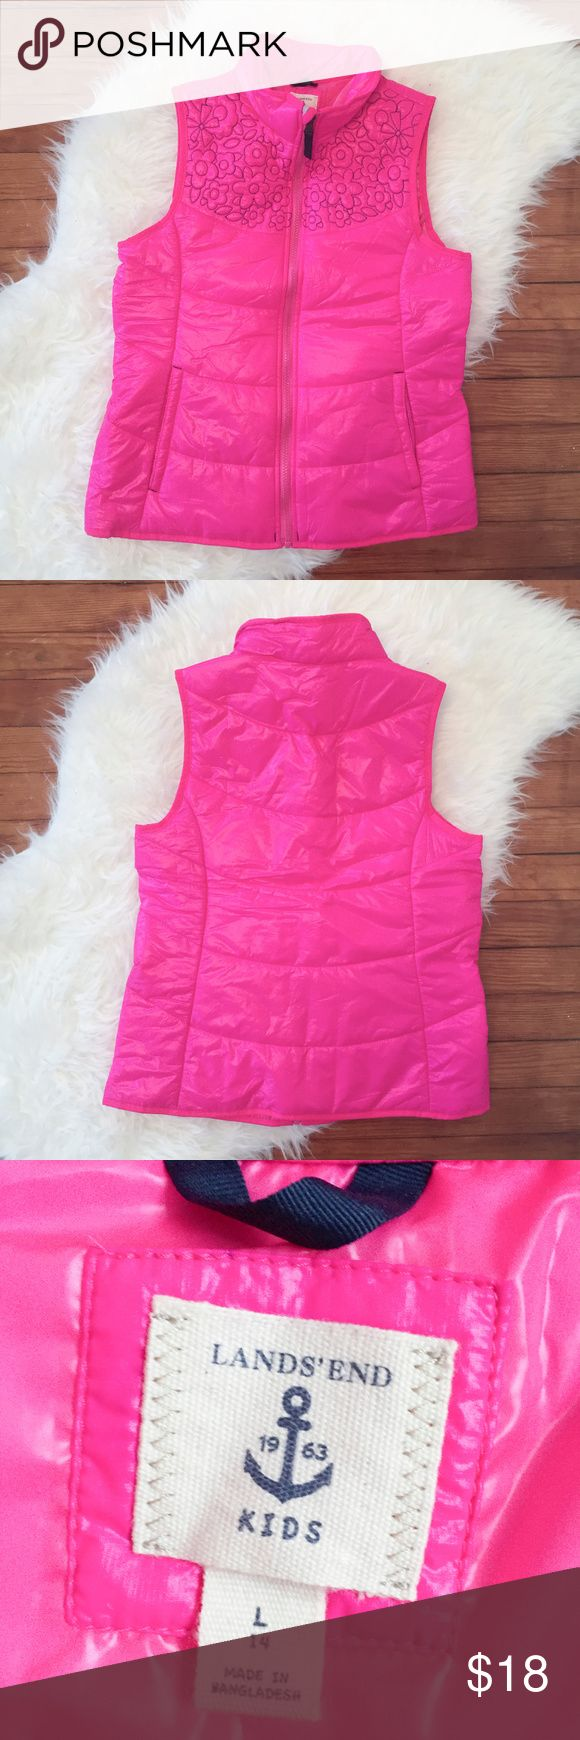 """NWOT LANDS' END Vest Outter Sleeveless Top Jacket """" LANDS' END KIDS """"  New without tags  Size : Kids L / 14 Armpit to armpit : 18"""" Length : 24""""  Please see the pictures.  Thank you for looking my item. Please check out my other items!! Lands' End Jackets & Coats Vests"""